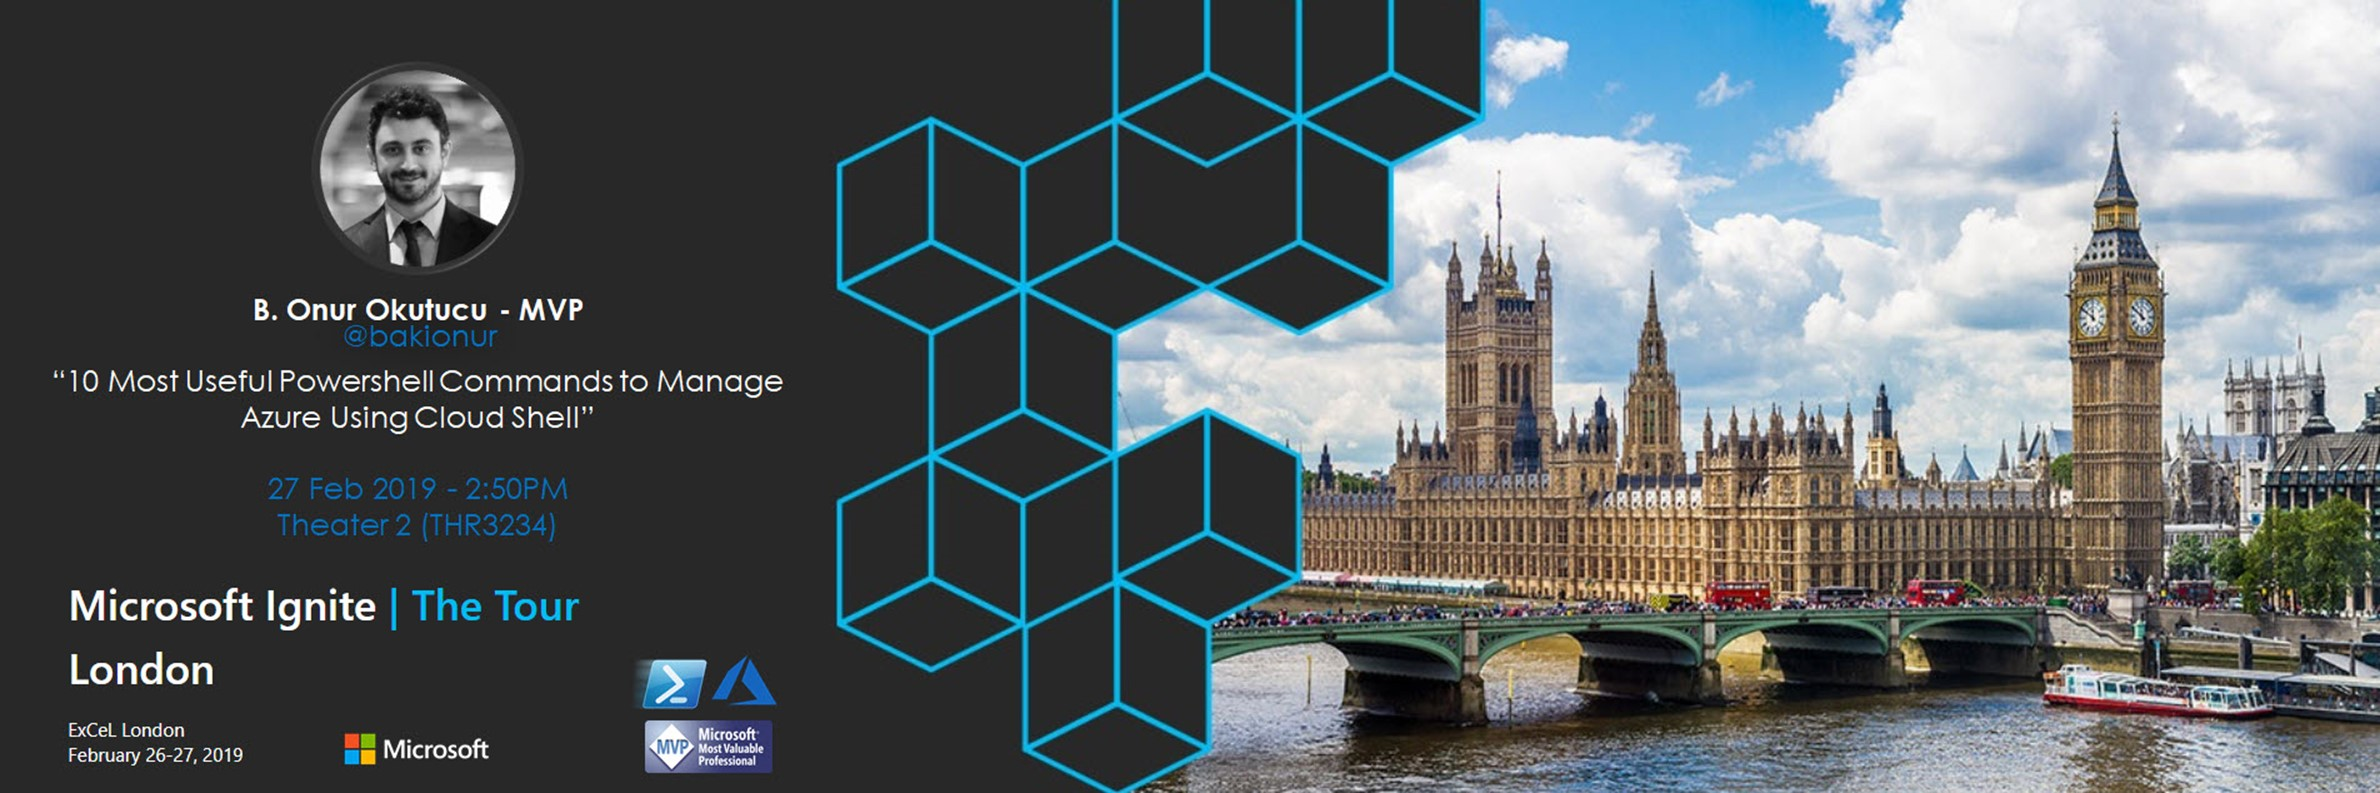 27 Subat'ta MS Ignite The Tour London'da Cloud Shell anlatacagim!